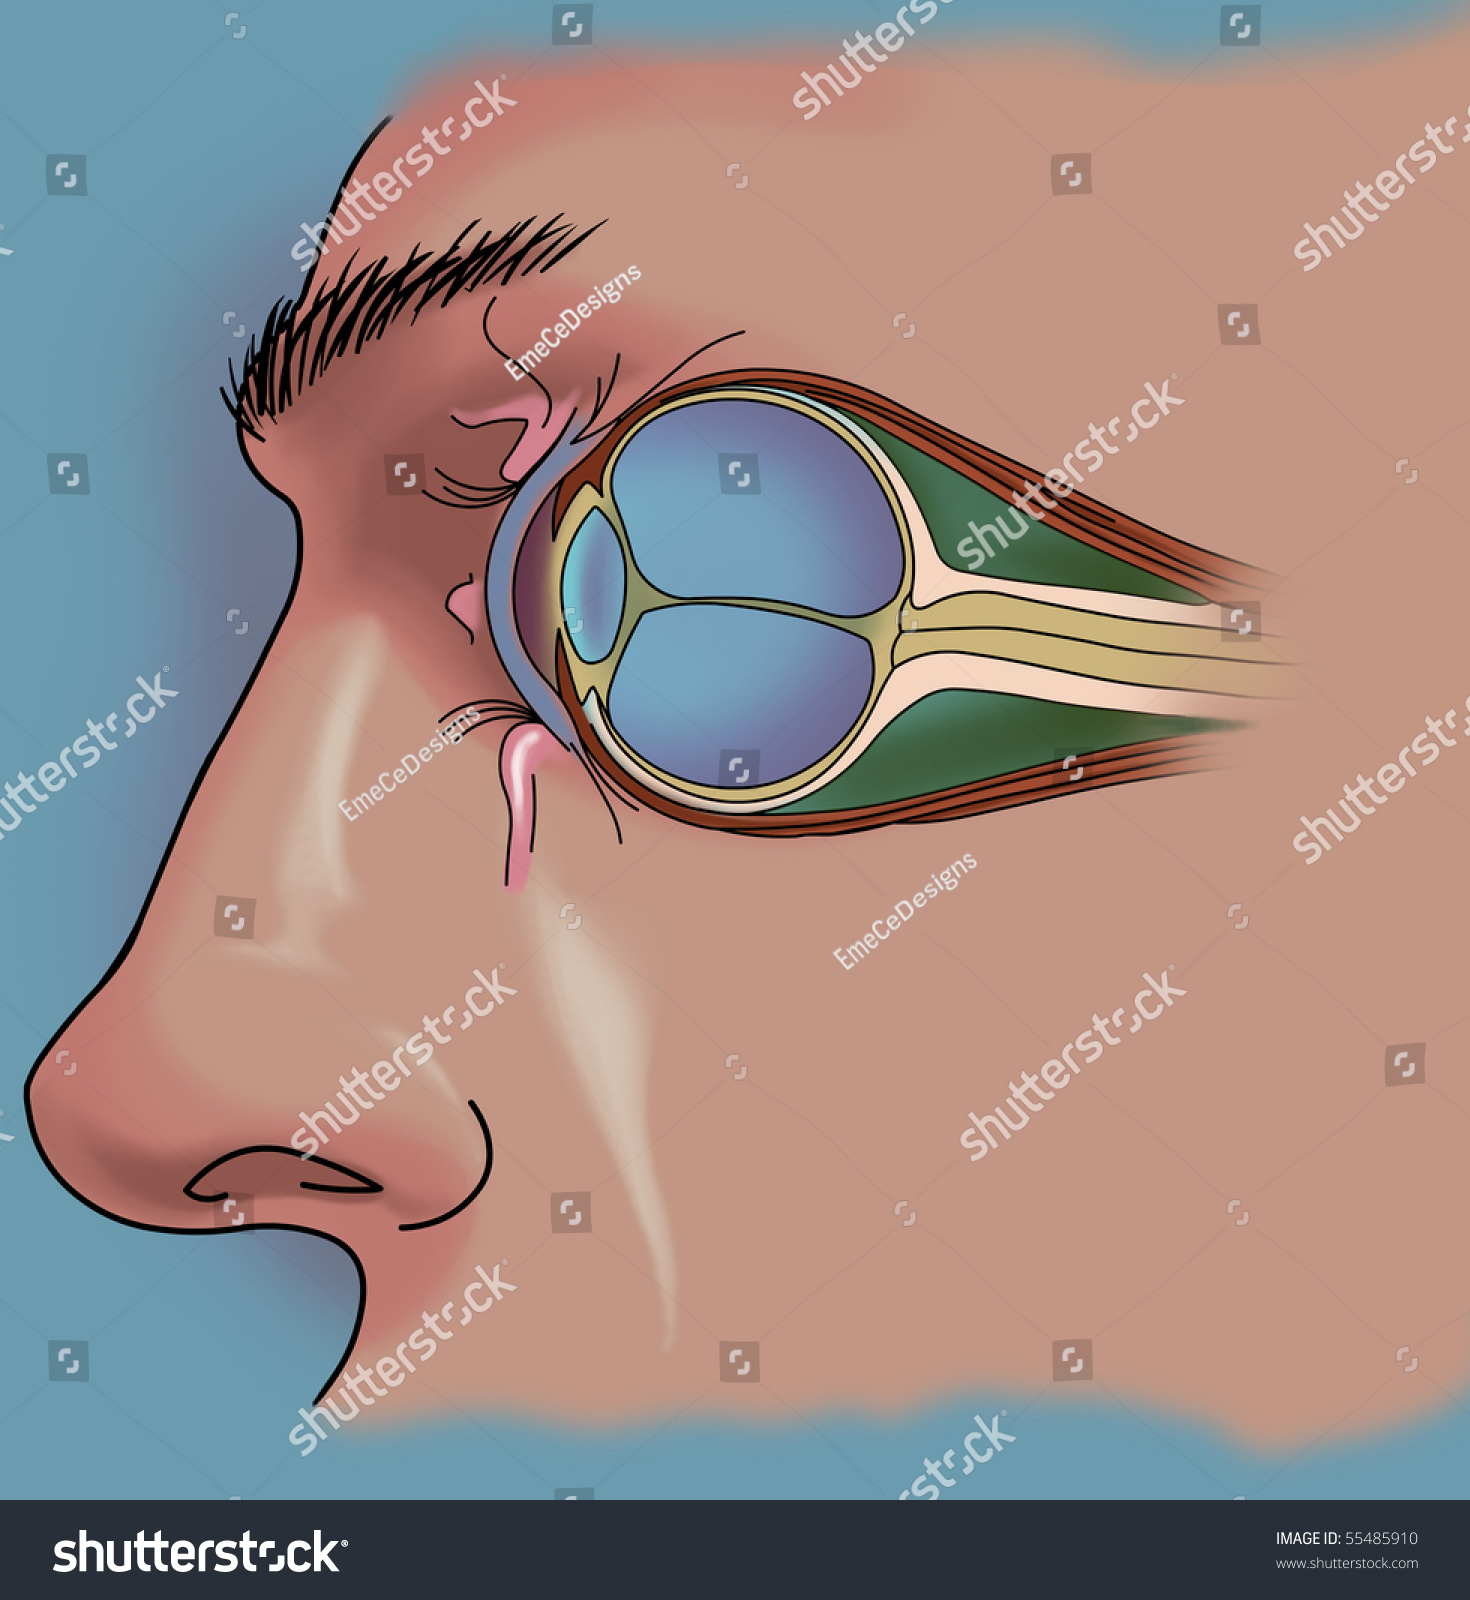 Anatomy Eye Cutaway View Stock Illustration 55485910 - Shutterstock